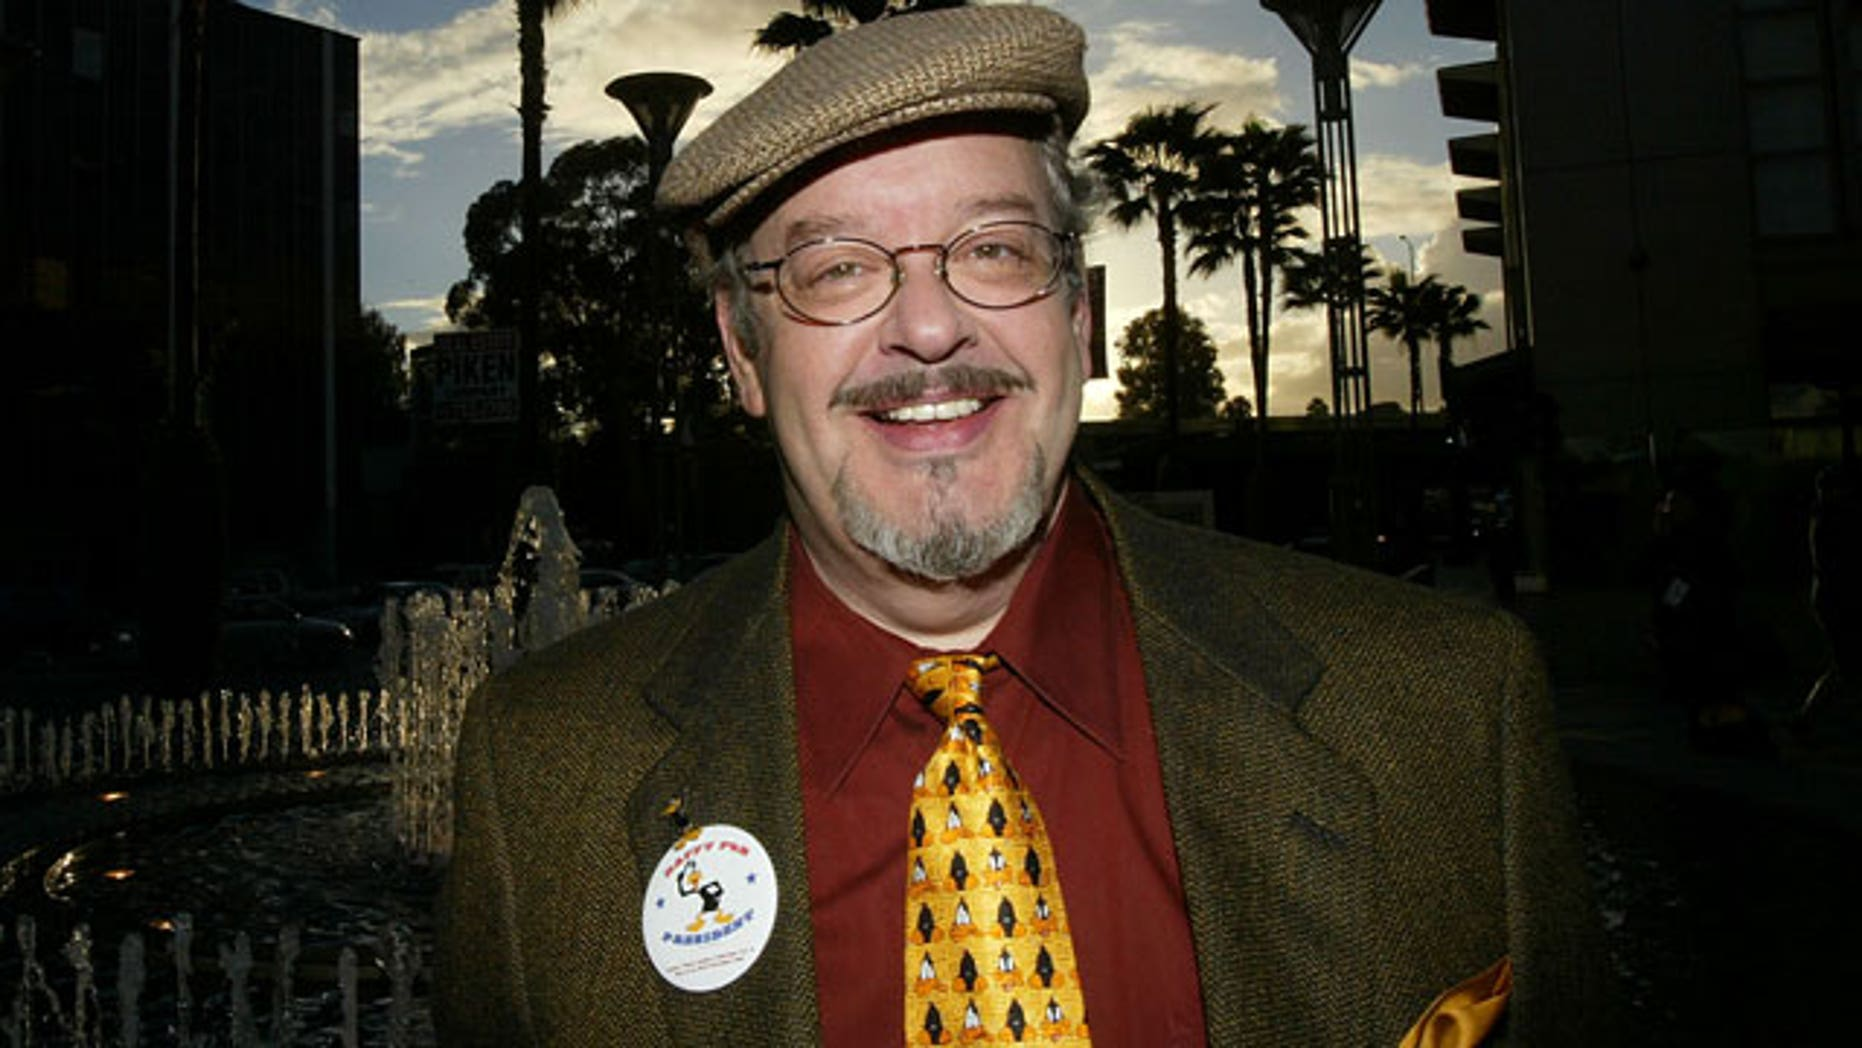 "LOS ANGELES - OCTOBER 20:  Joe Alaskey, the voice of Daffy Duck, attends the ""Daffy Duck for President Campaign Rally"" press conference to celebrate the release of the Looney Tunes Golden Collection Volume Two DVD at Sherman Oaks Galleria October 20, 2004 in Los Angeles, California. (Photo by Mark Mainz/Getty Images)"